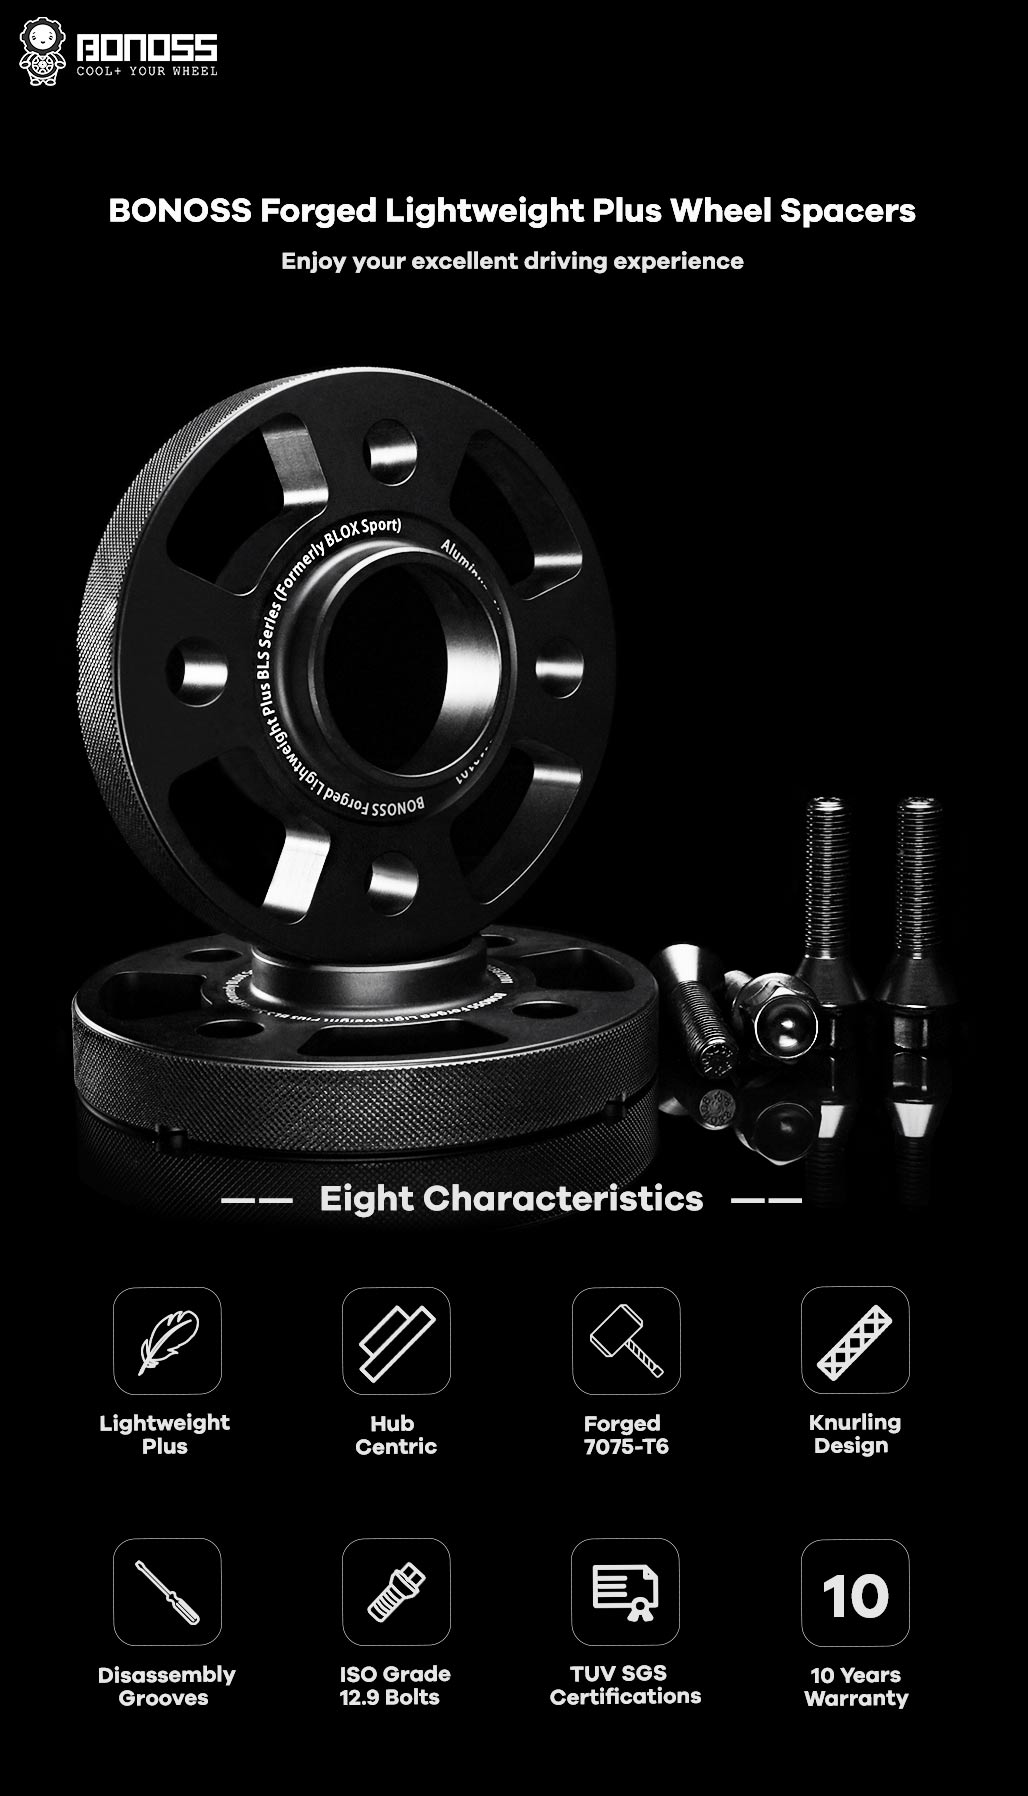 AL7075-T6-BONOSS-forged-lightweight-plus-hubcentric-4x100-56.1-wheel-spacers-12x1.5-1